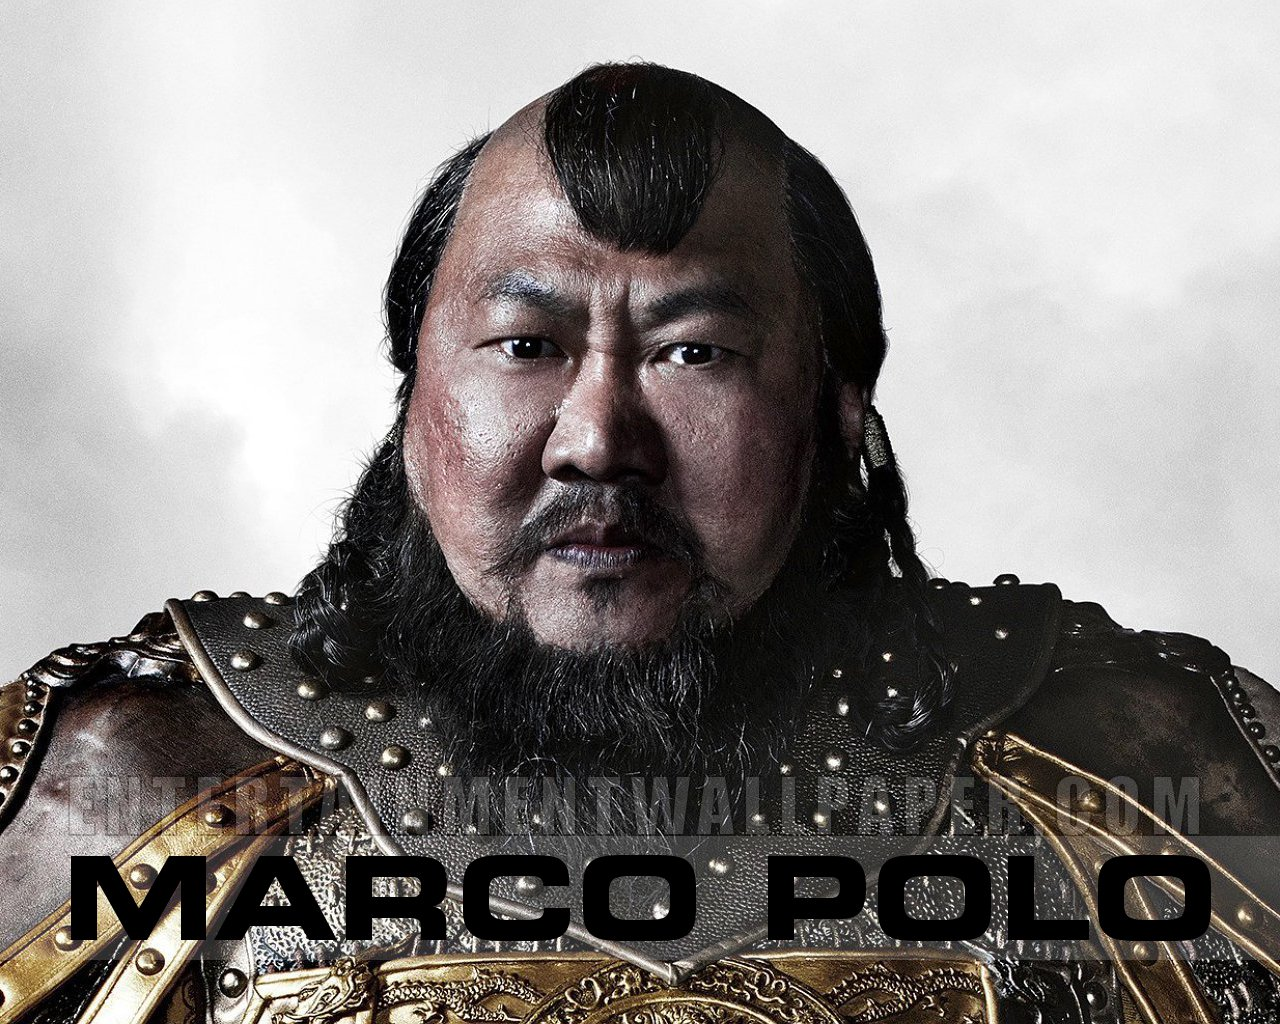 Marco Polo Wallpaper - WallpaperSafari - 334.0KB